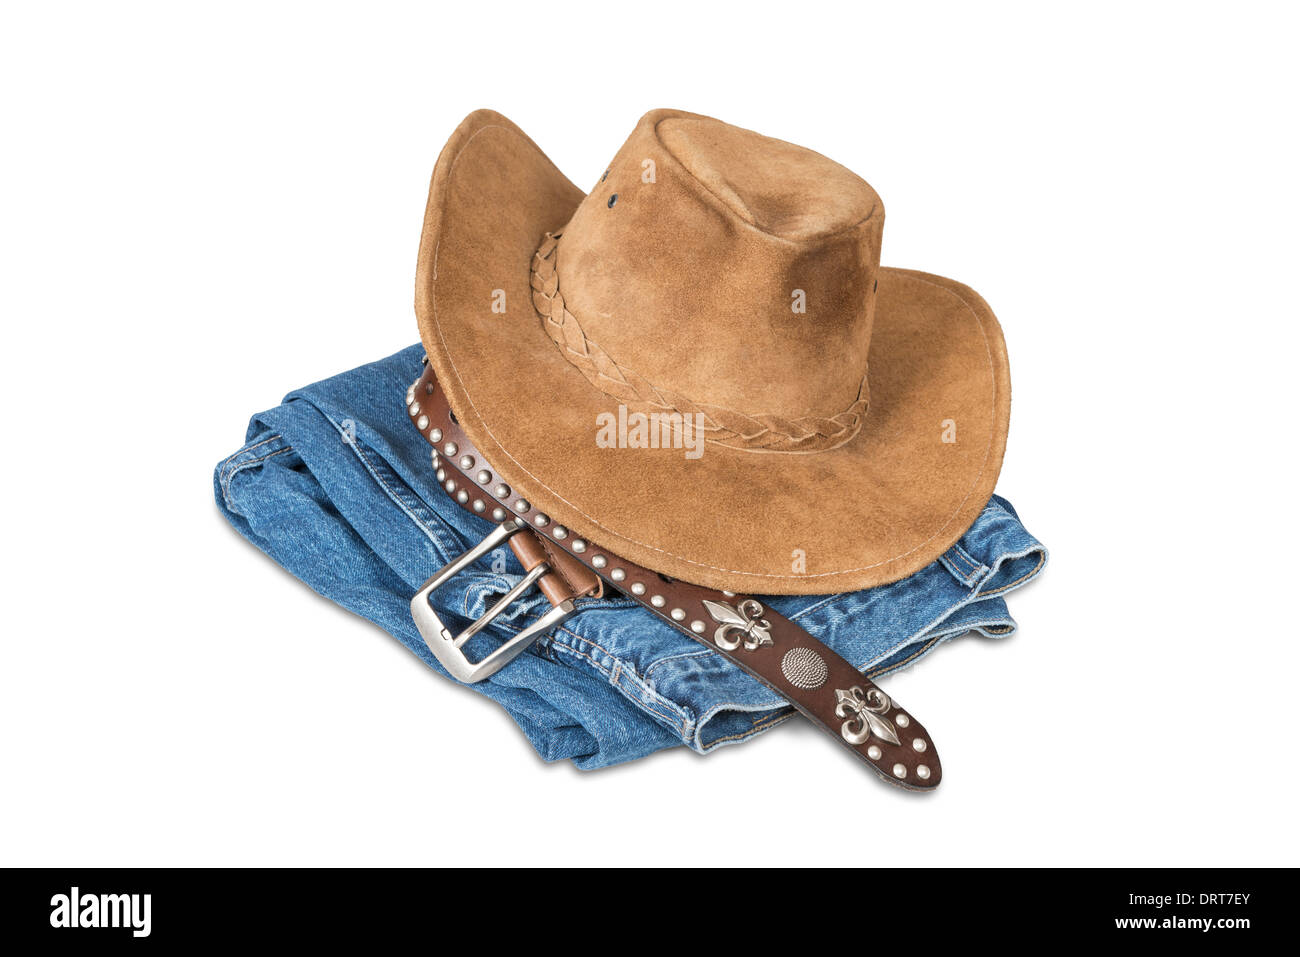 7cb79a182f5 Cowboy hat and accessories isolated over white with clipping path ...